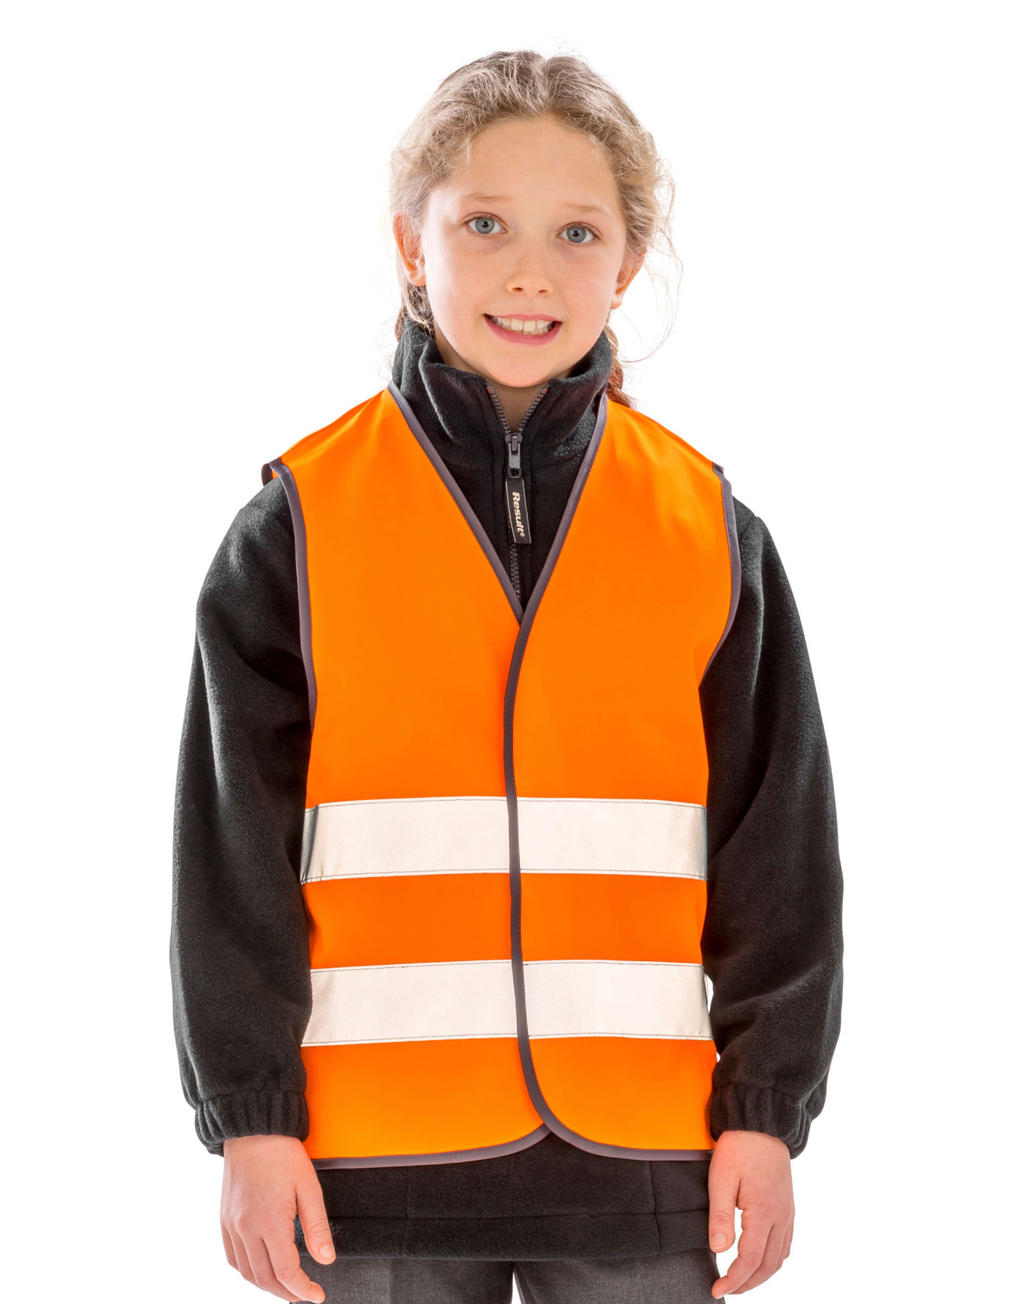 Junior Hi-Vis Safety Vest